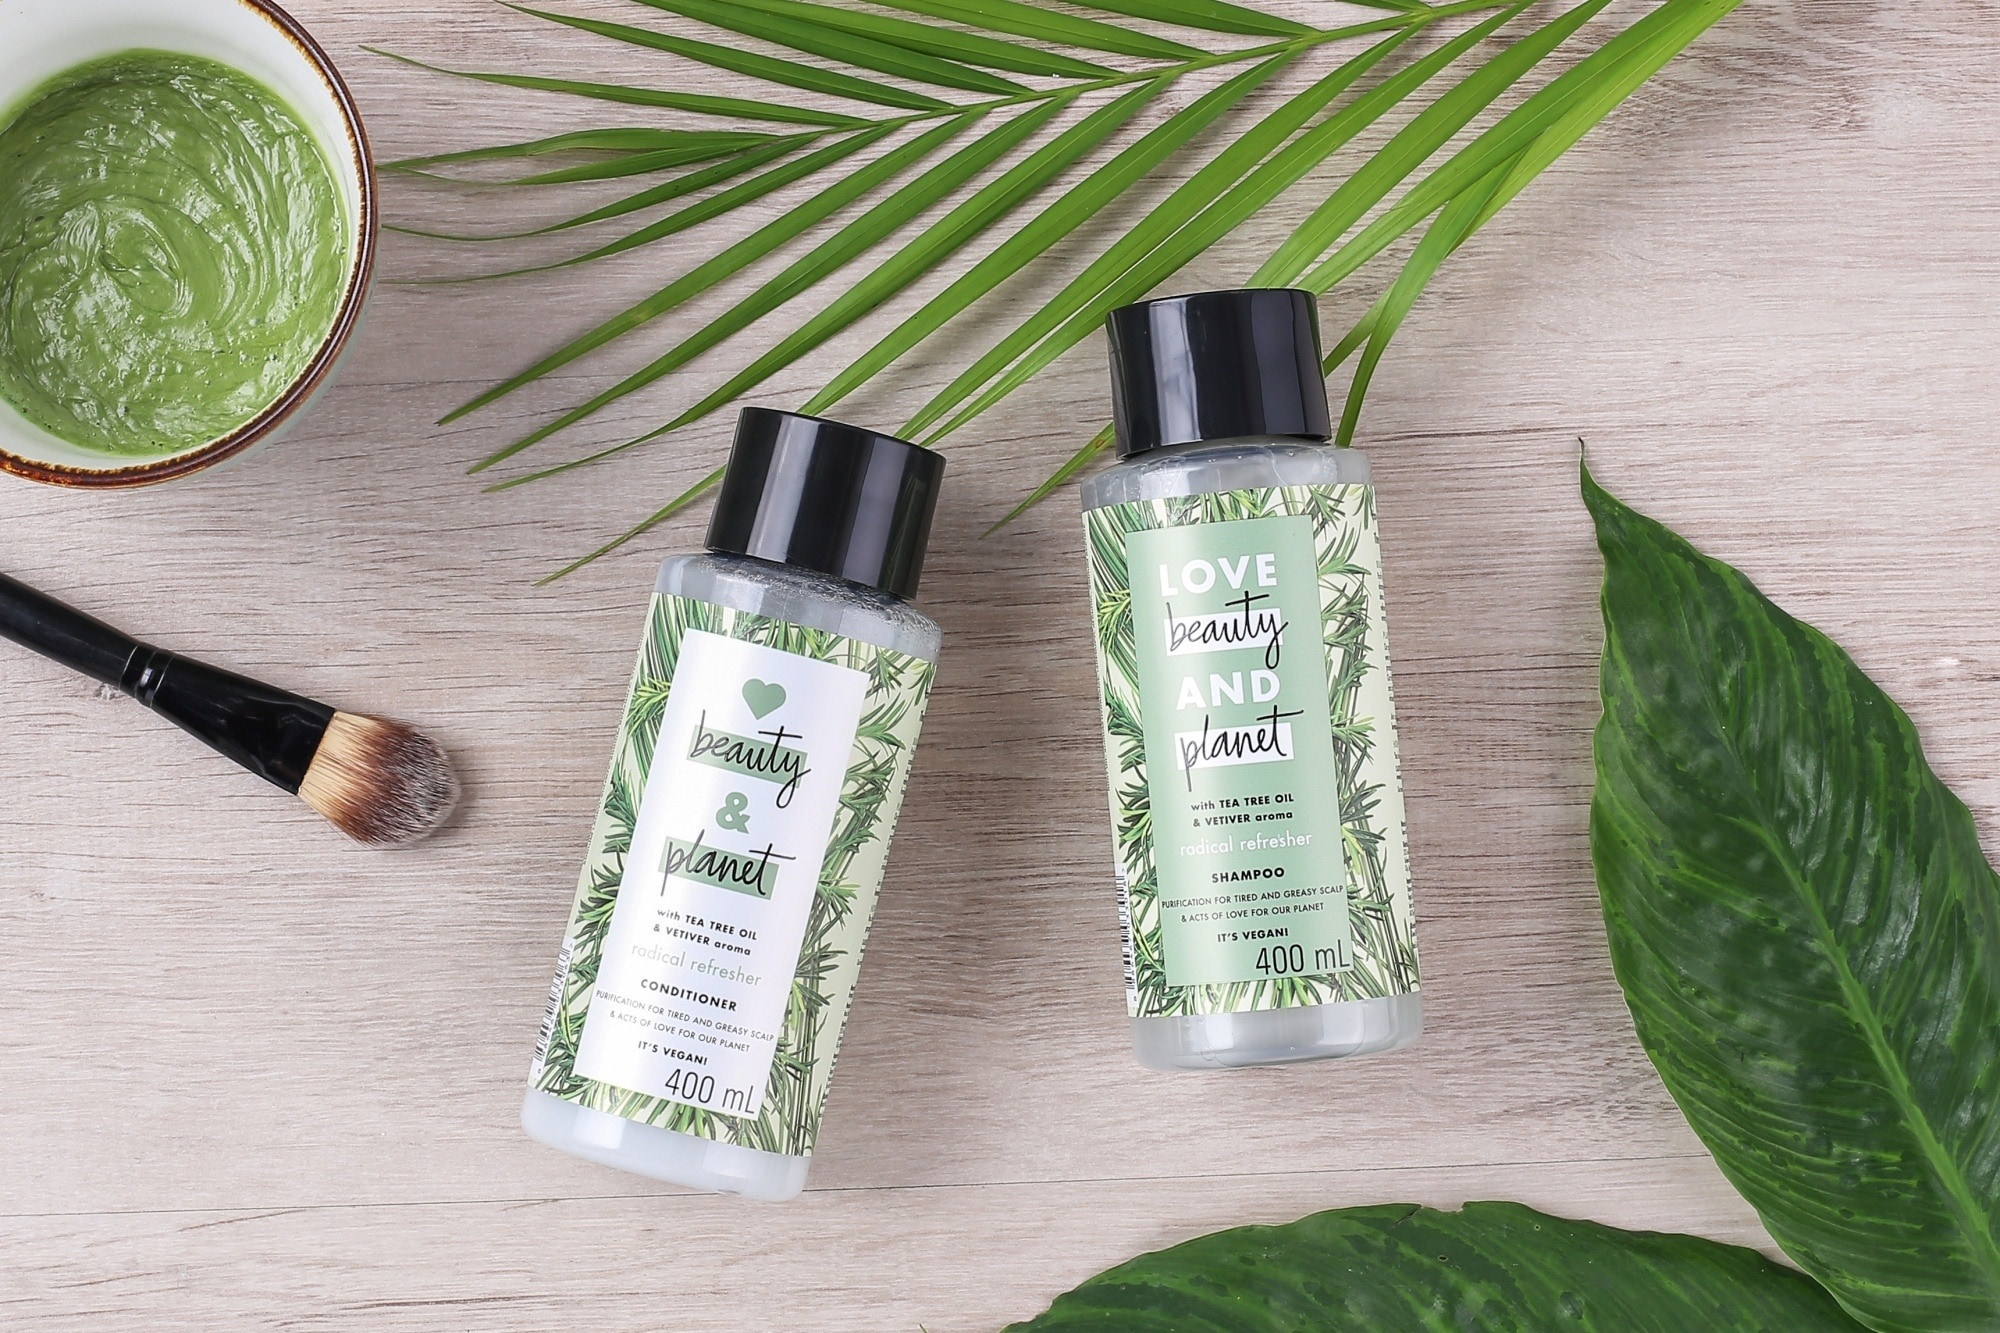 Eco-friendly hair products: Flatlay of shampoo and conditioner with leaves